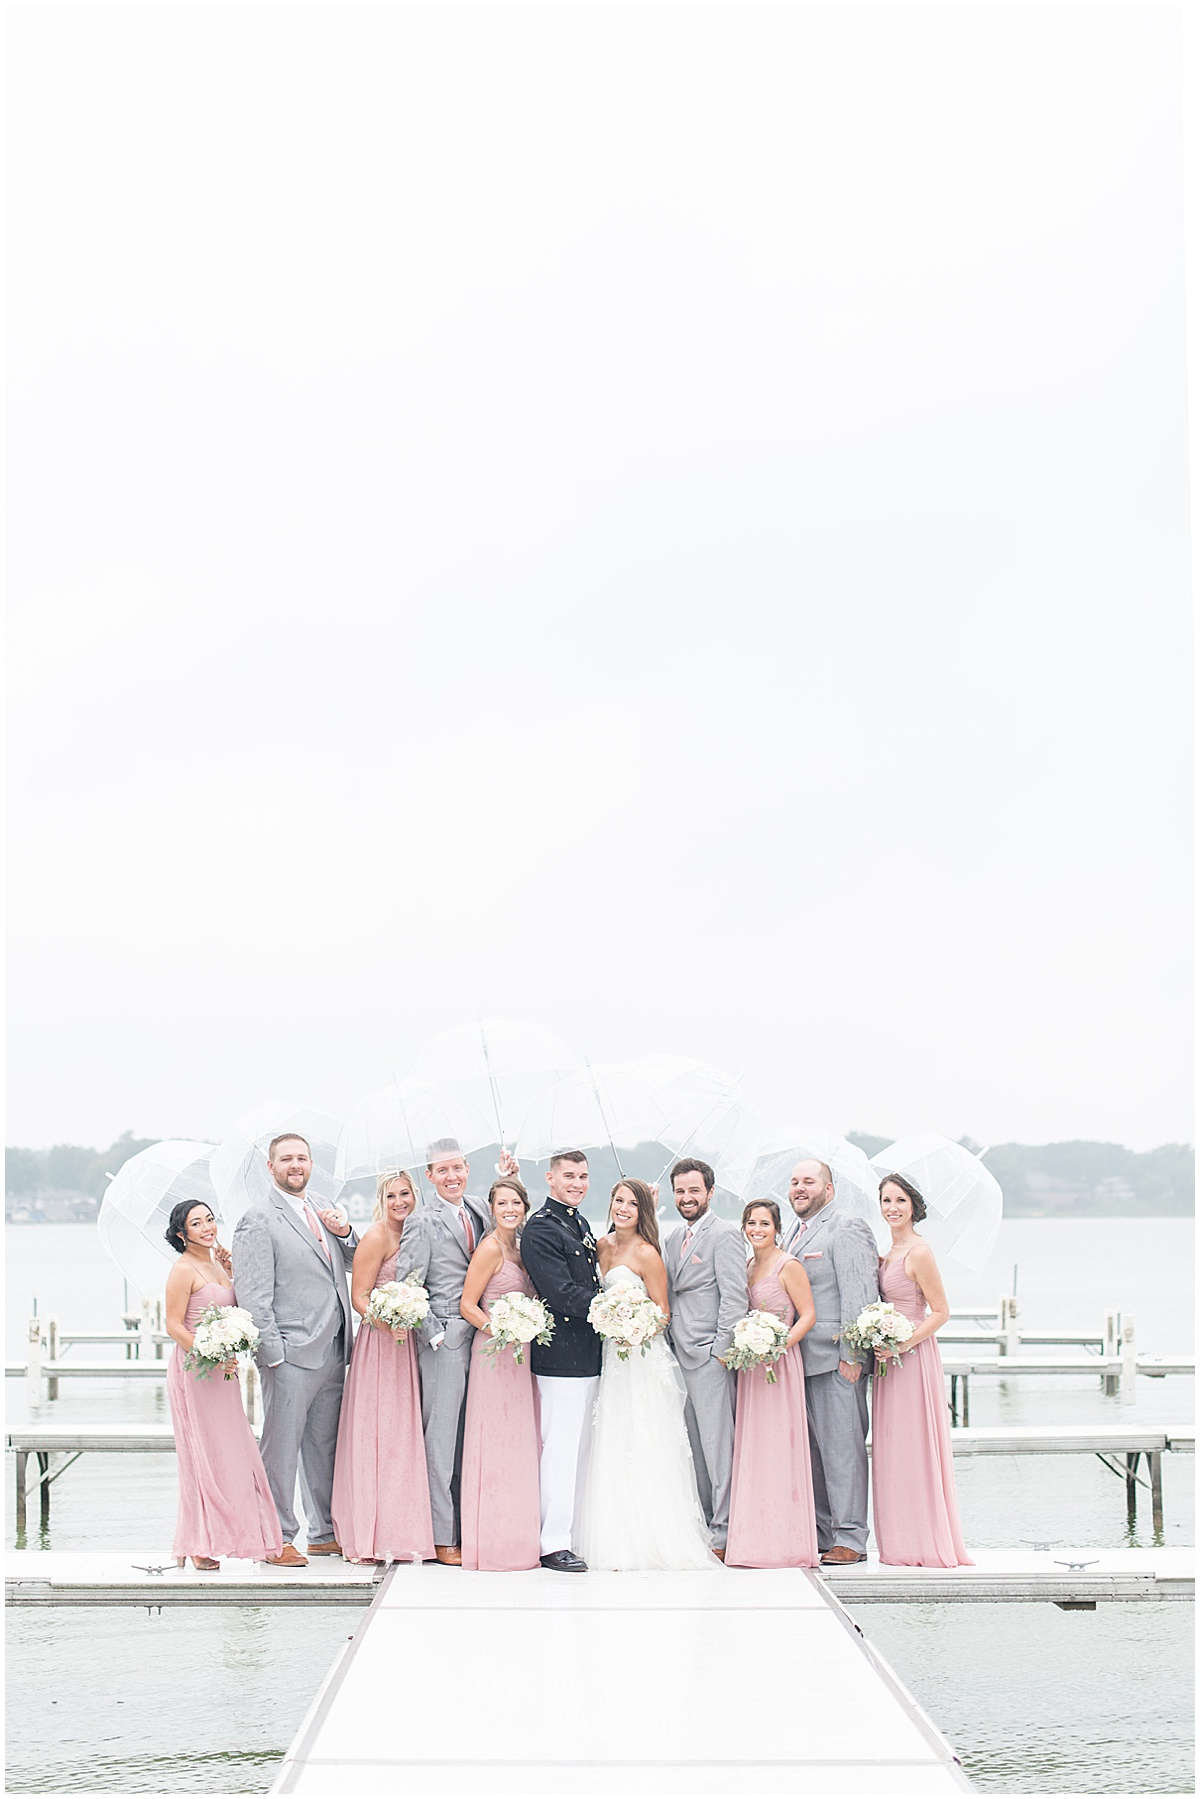 Bridal party on pier before wedding at The Lighthouse Restaurant in Cedar Lake, Indiana by Victoria Rayburn Photography